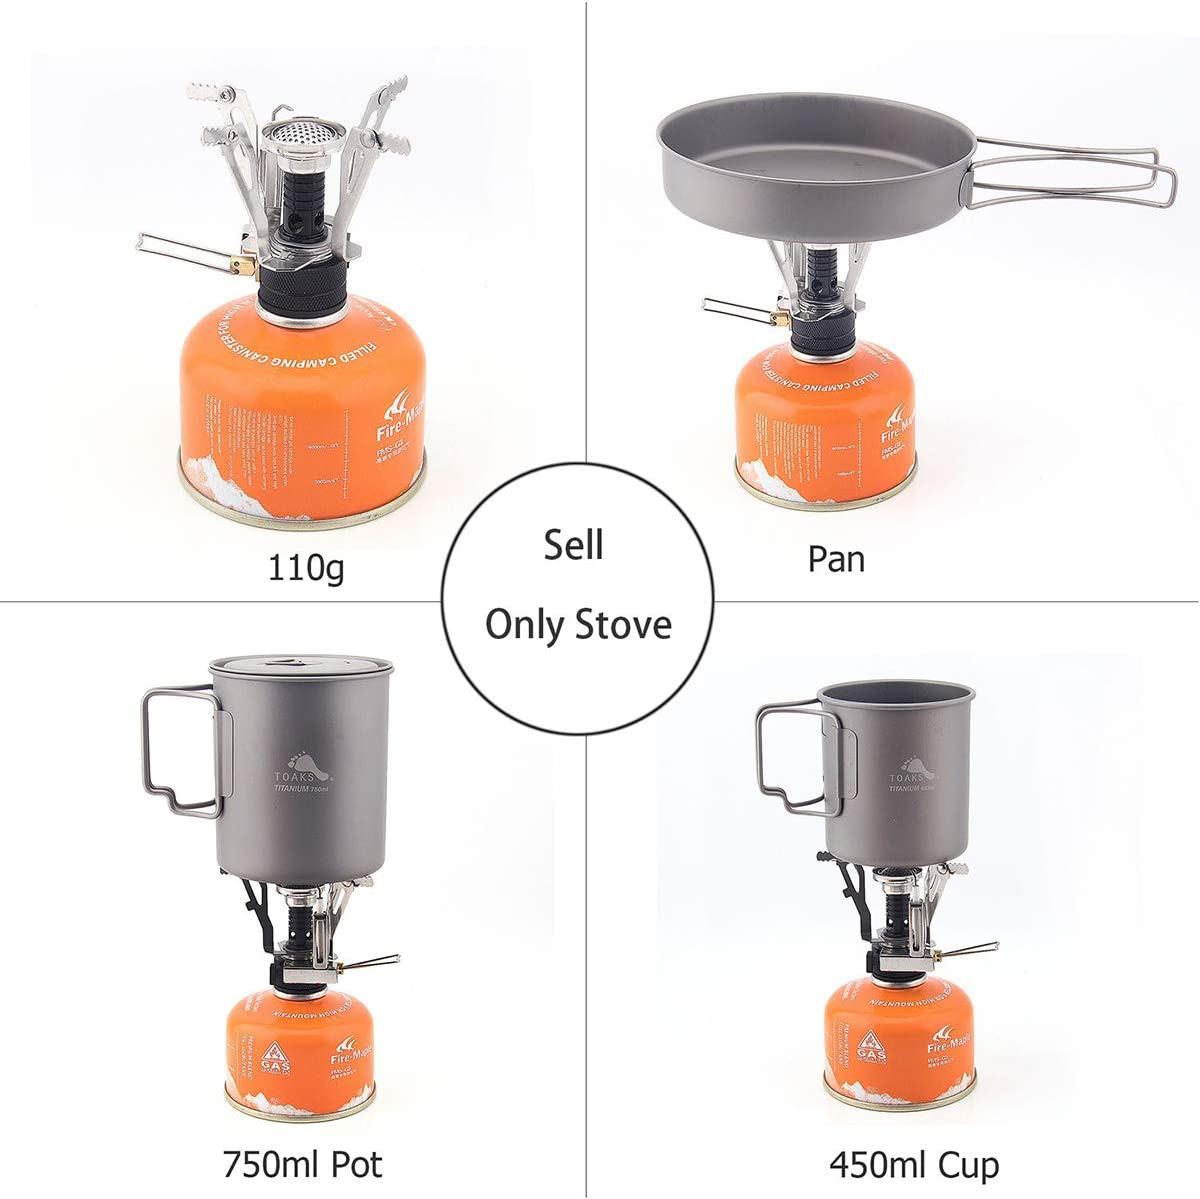 Backpacking Stove Portable Camping Stove with Piezo Ignition Stable Supports Ultralight Stove for Camping Hiking and Backpacking Trips Cooking